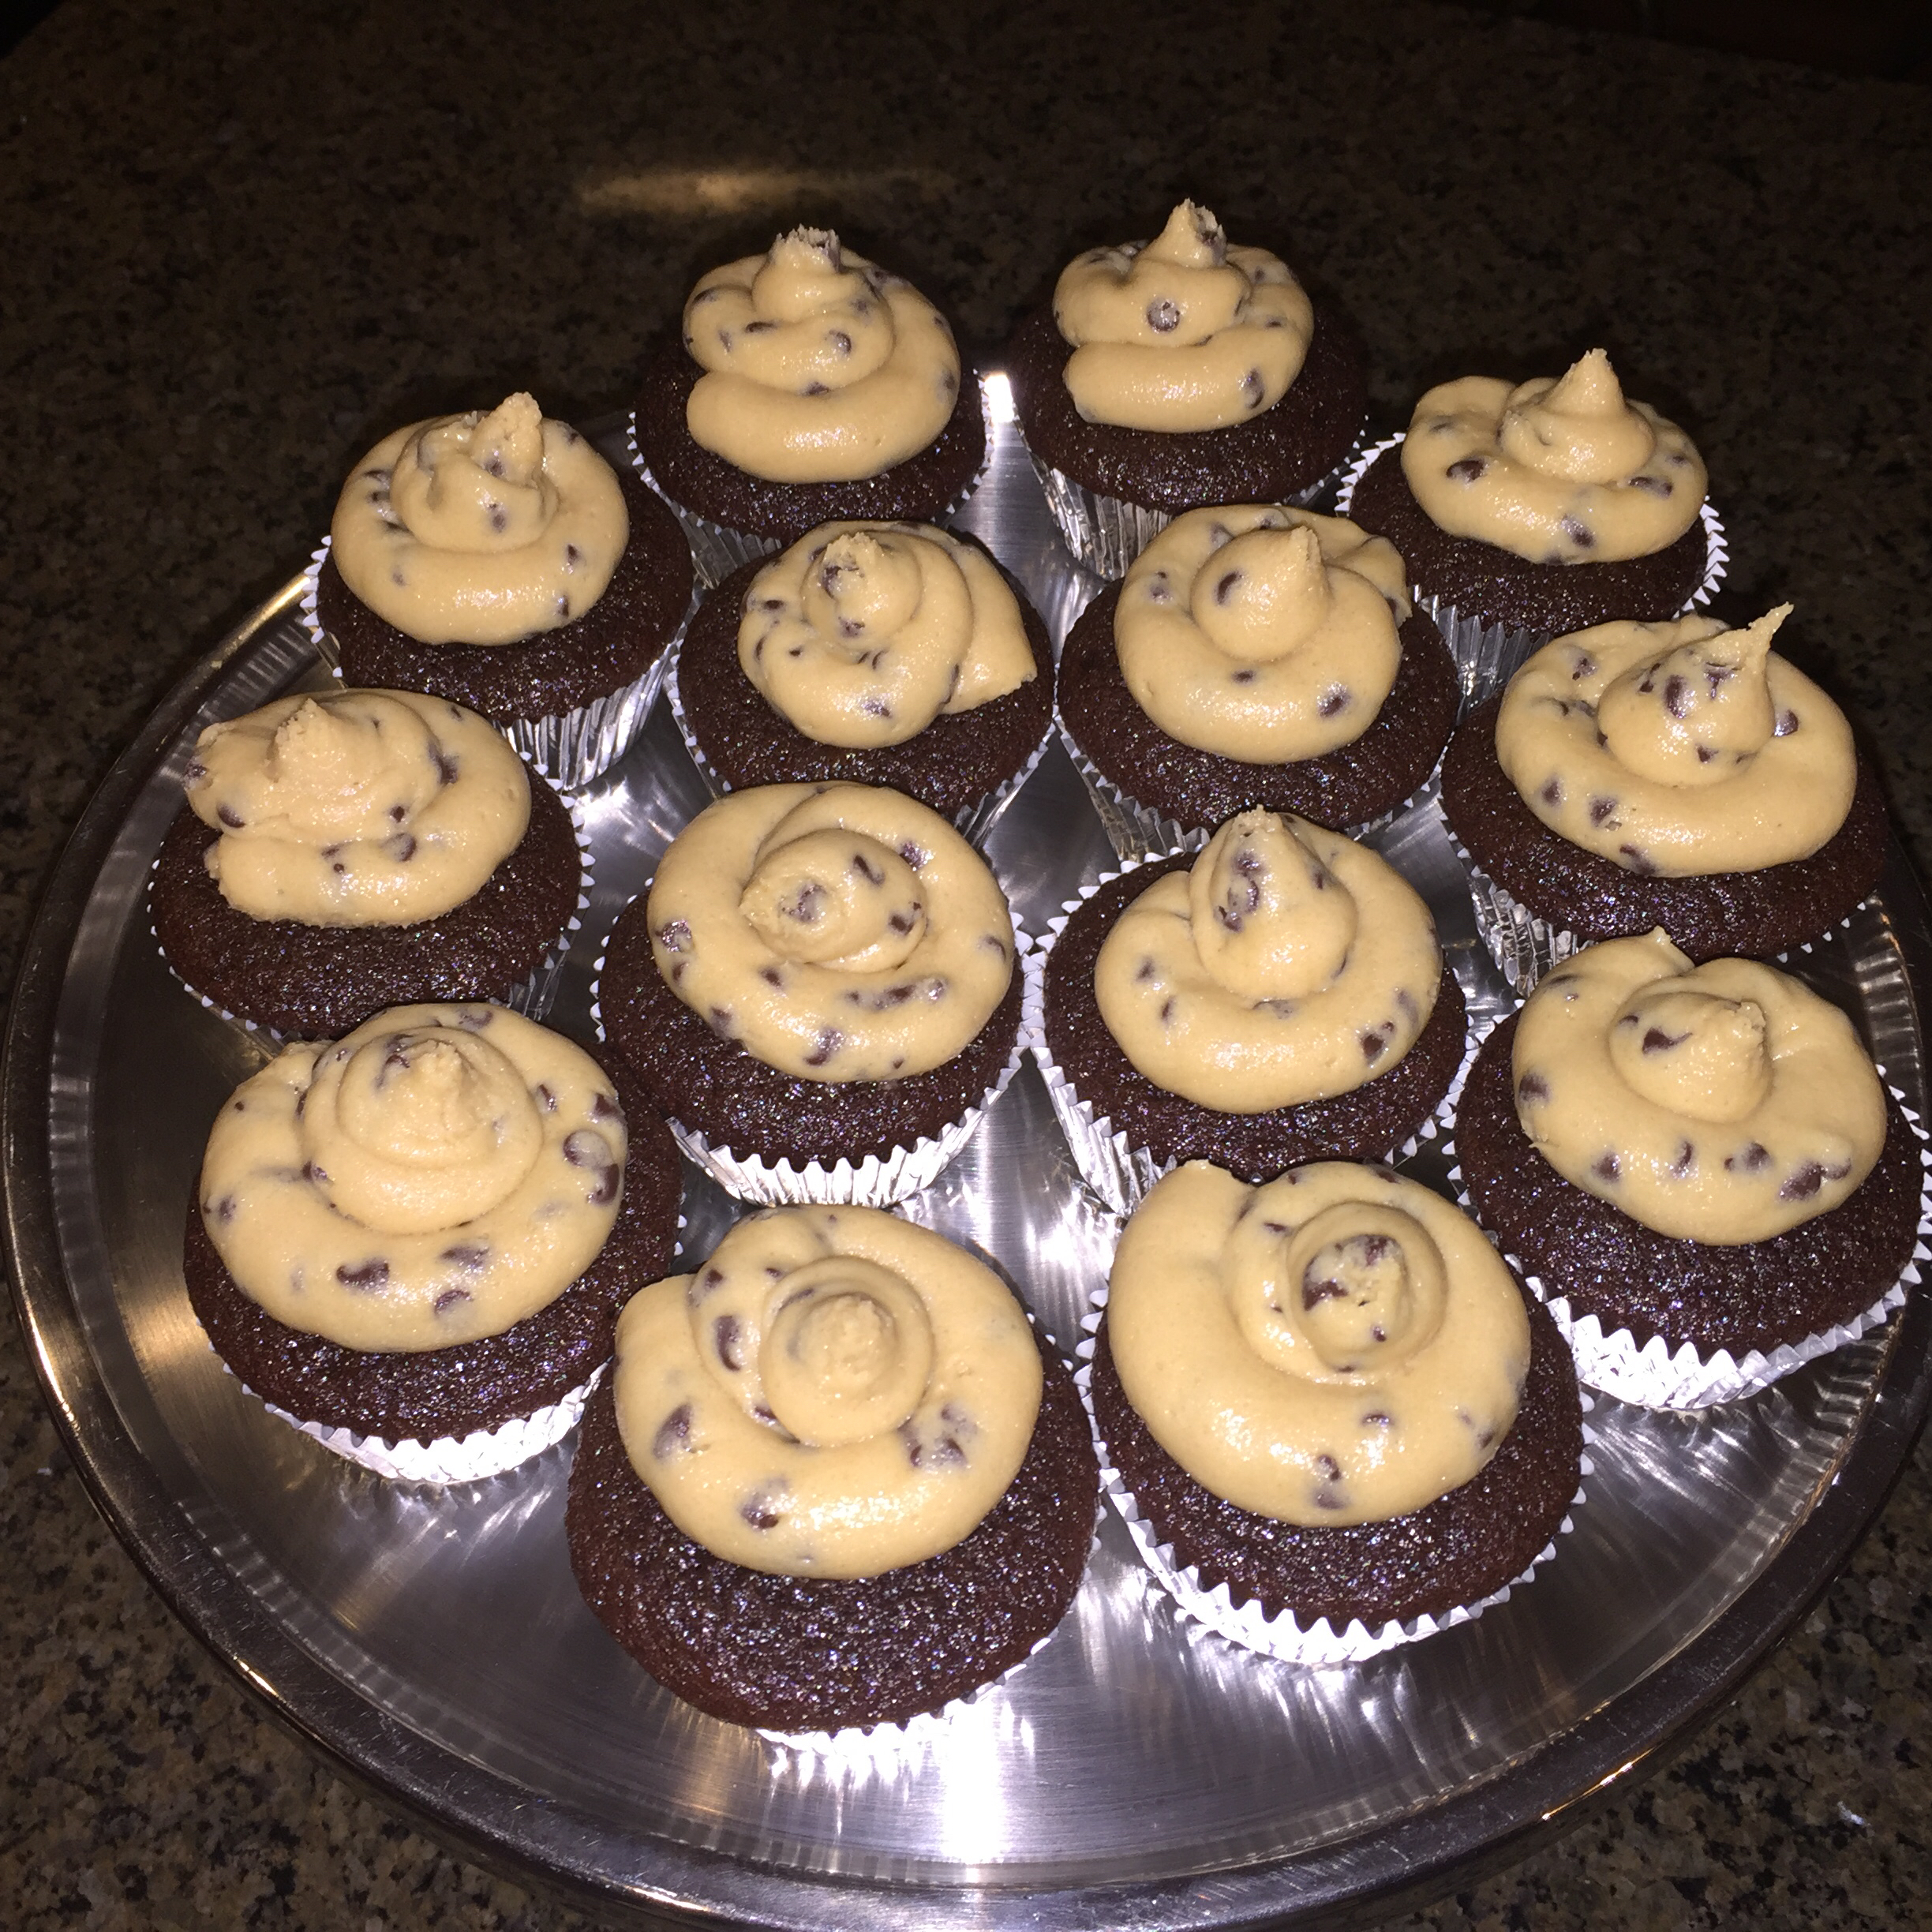 Chocolate Chip Cookie Dough Frosting tammie